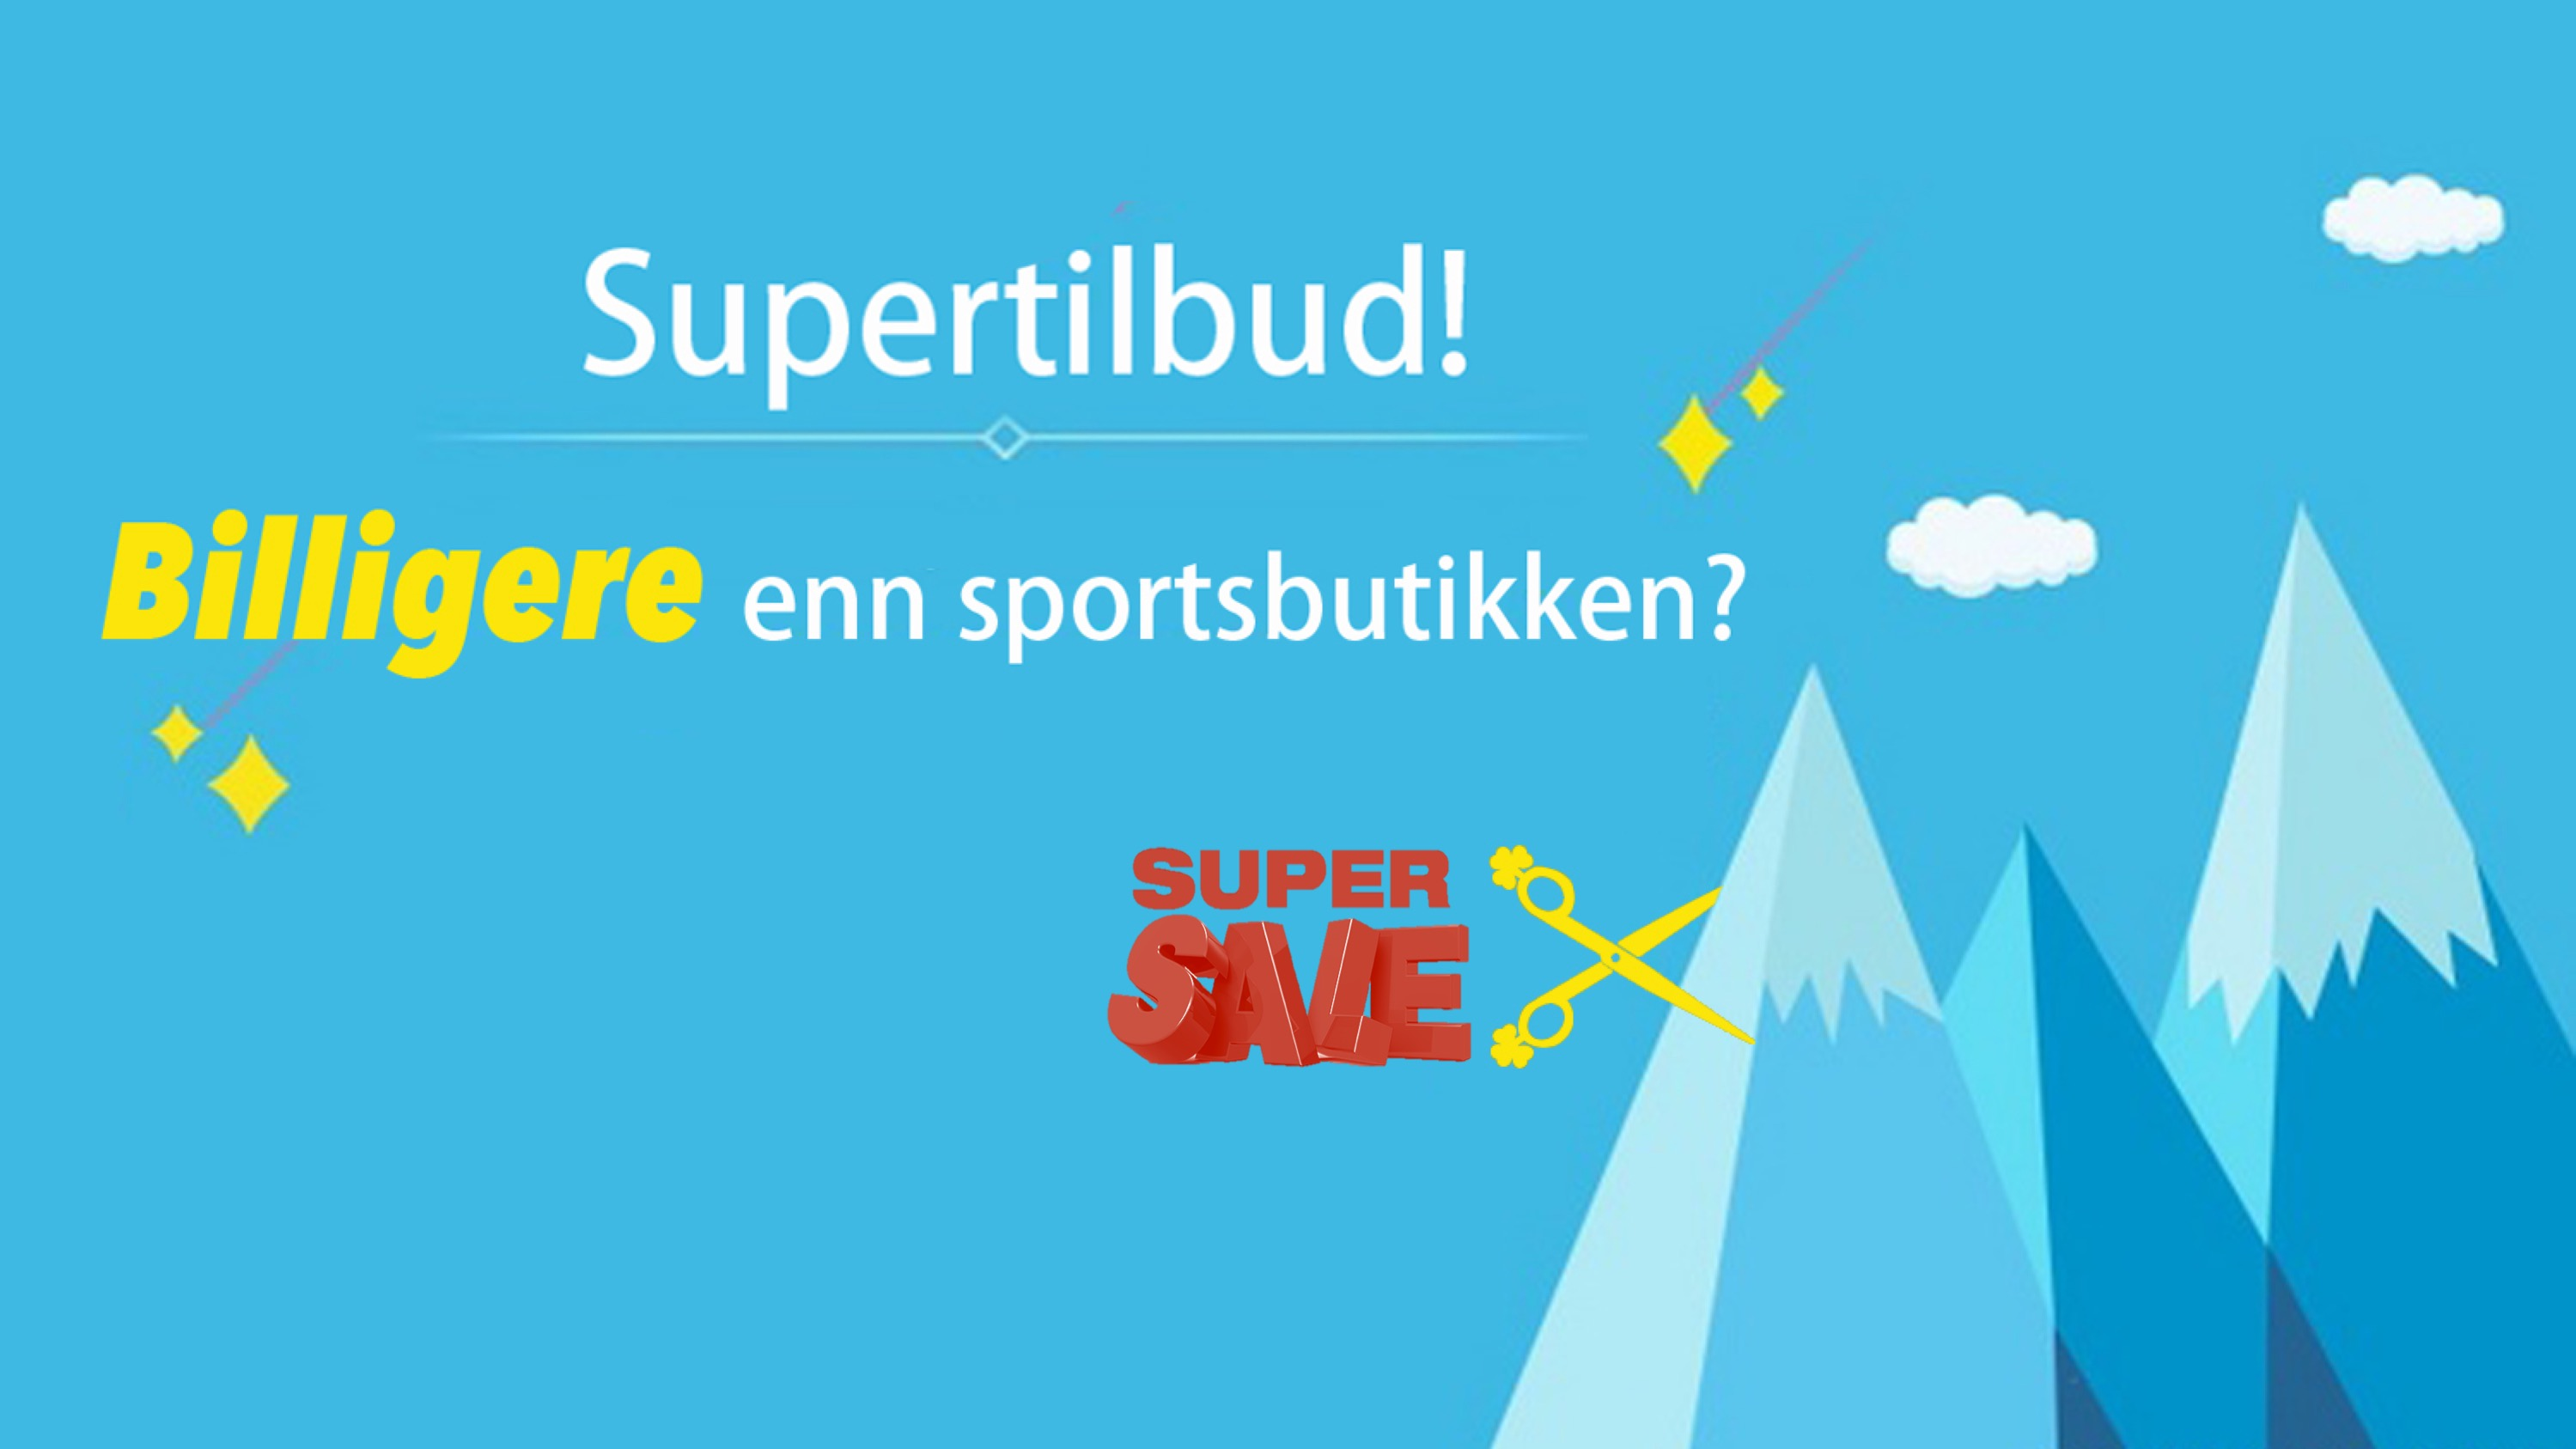 Supertilbud!